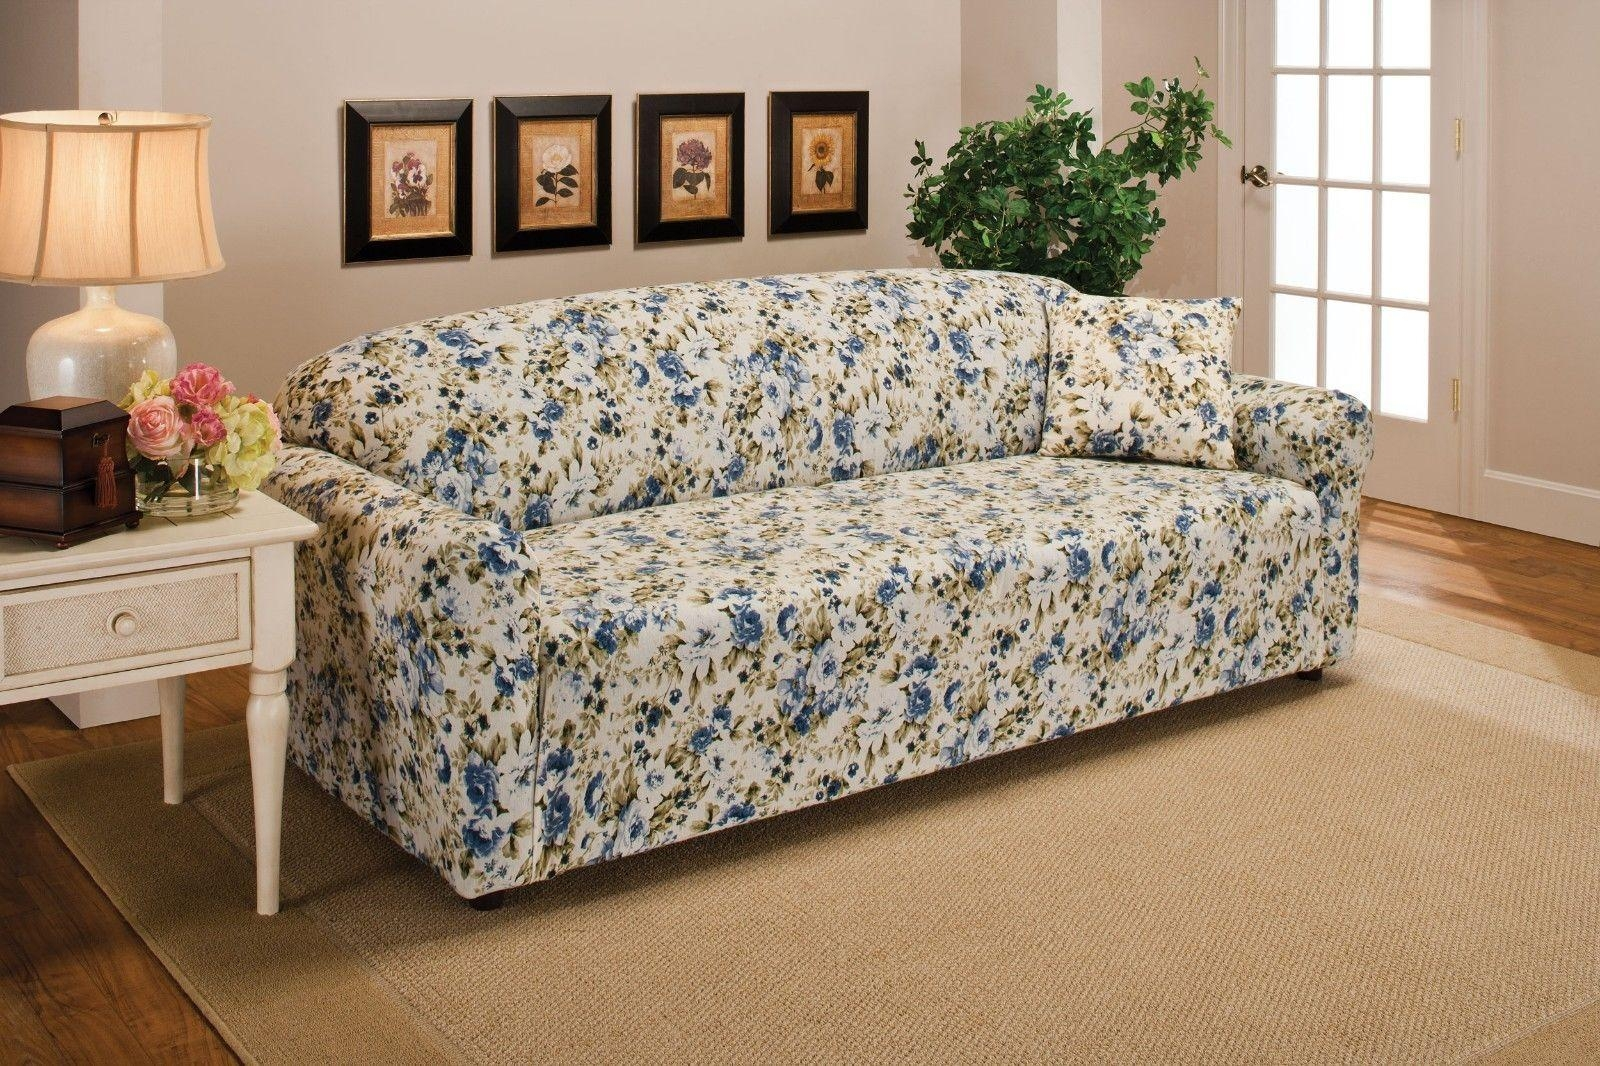 flower sofa covers ashley furniture 299 99 grandeur 20 collection of chintz covered sofas ideas